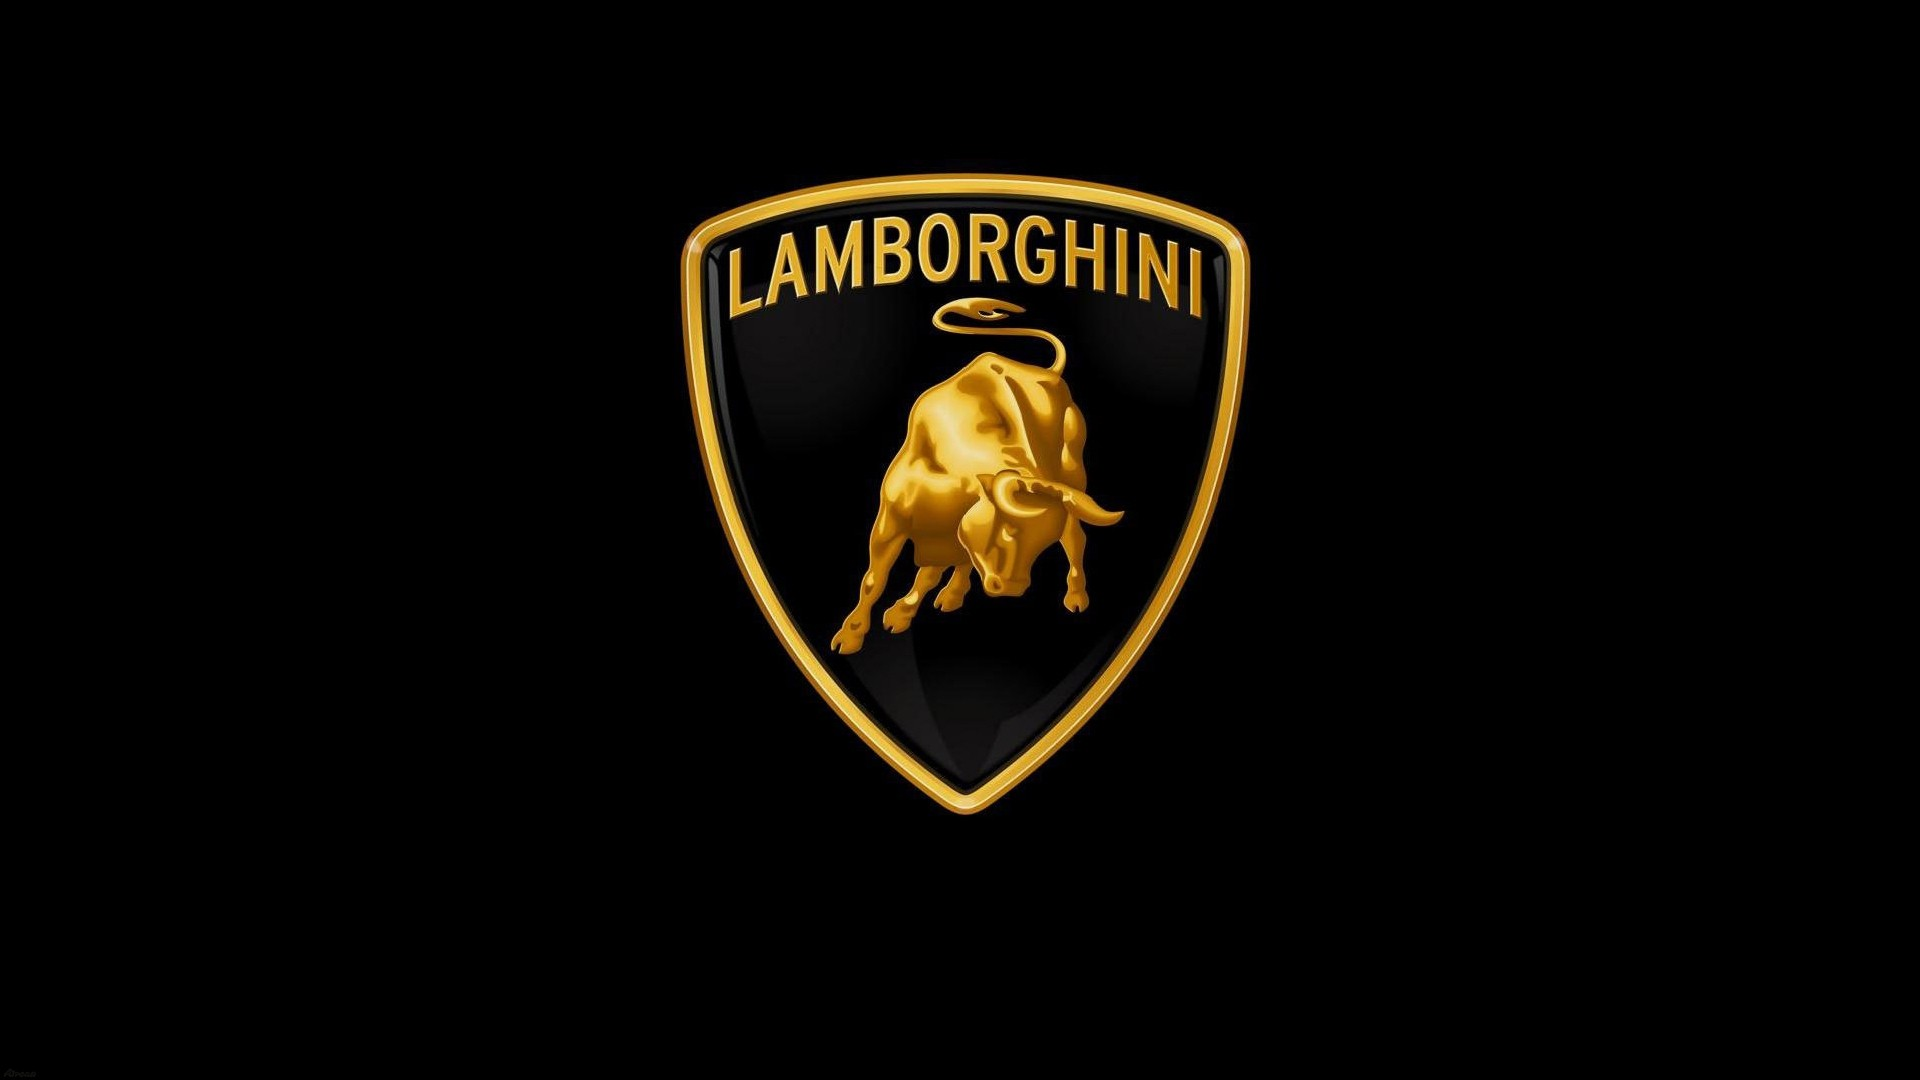 Logo of the Italian car brand Lamborghini on black background.